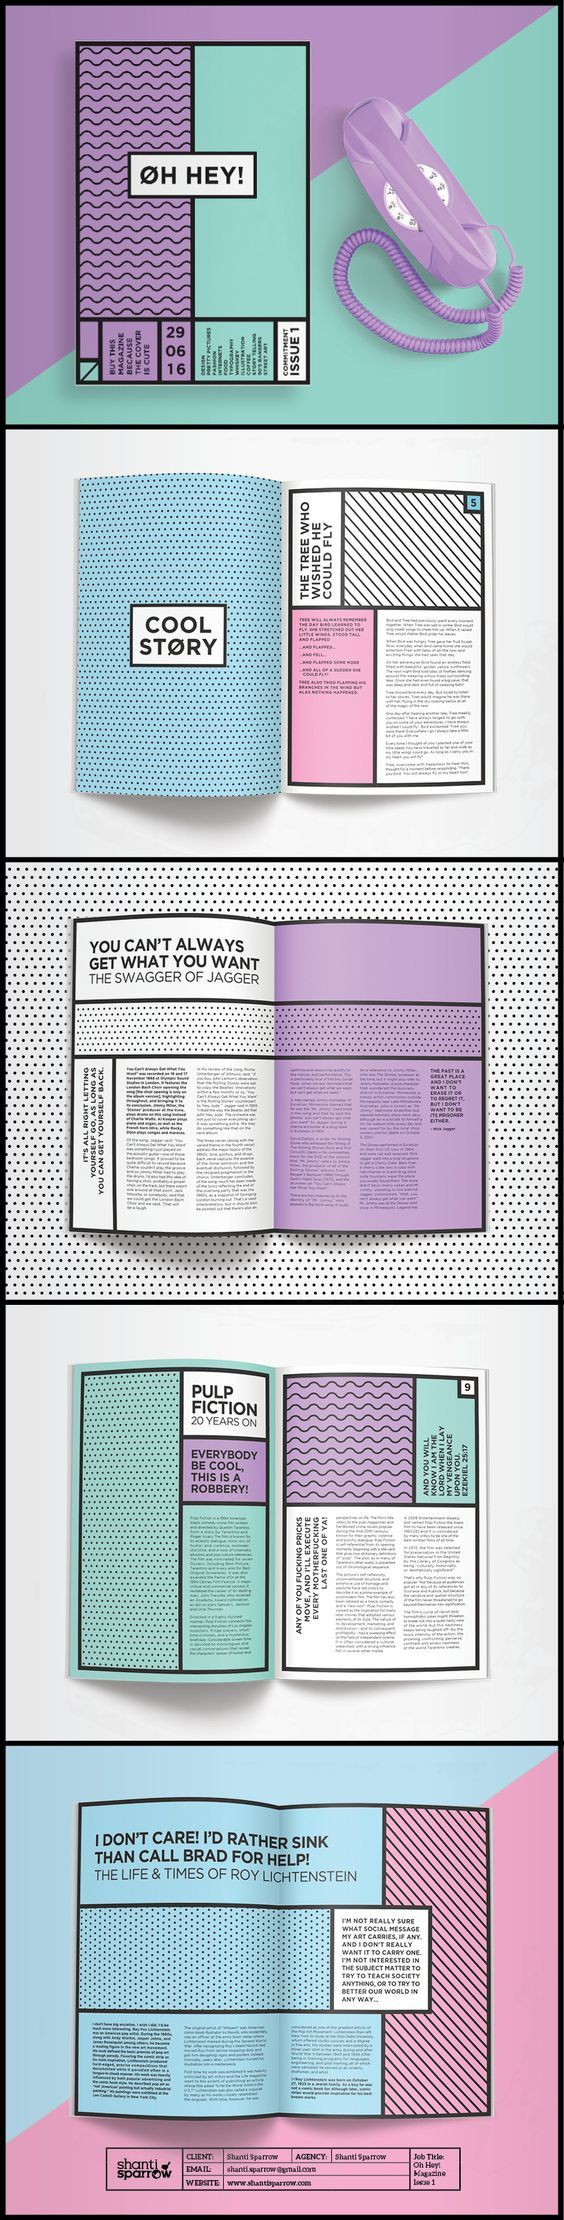 Design by Shanti Sparrow www.shantisparrow.com Client: Oh Hey! Project Name: Magazine Design